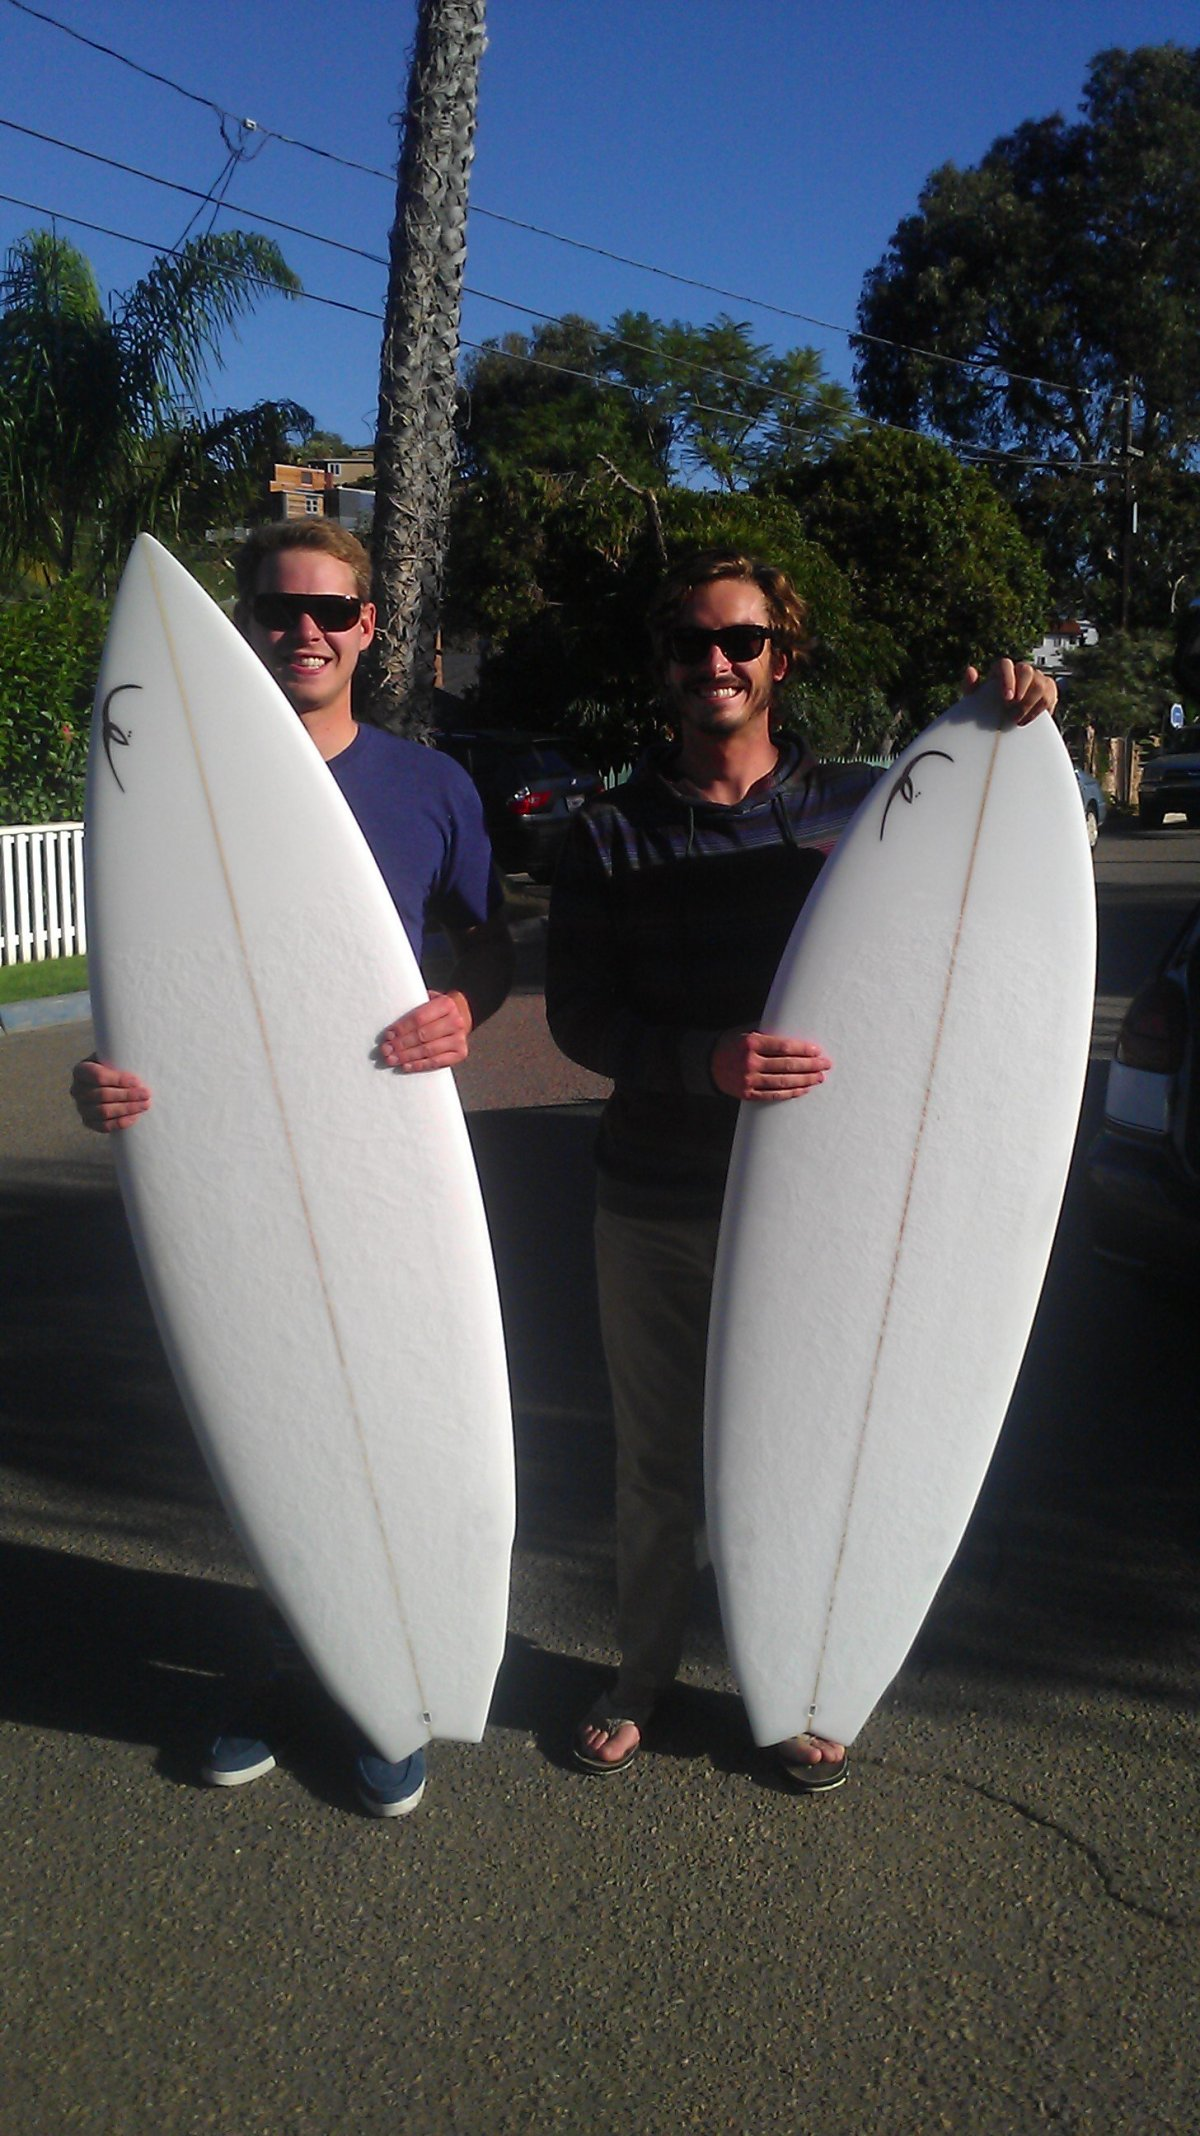 Stanton and Logan with New Siegel Pooh Surfboards